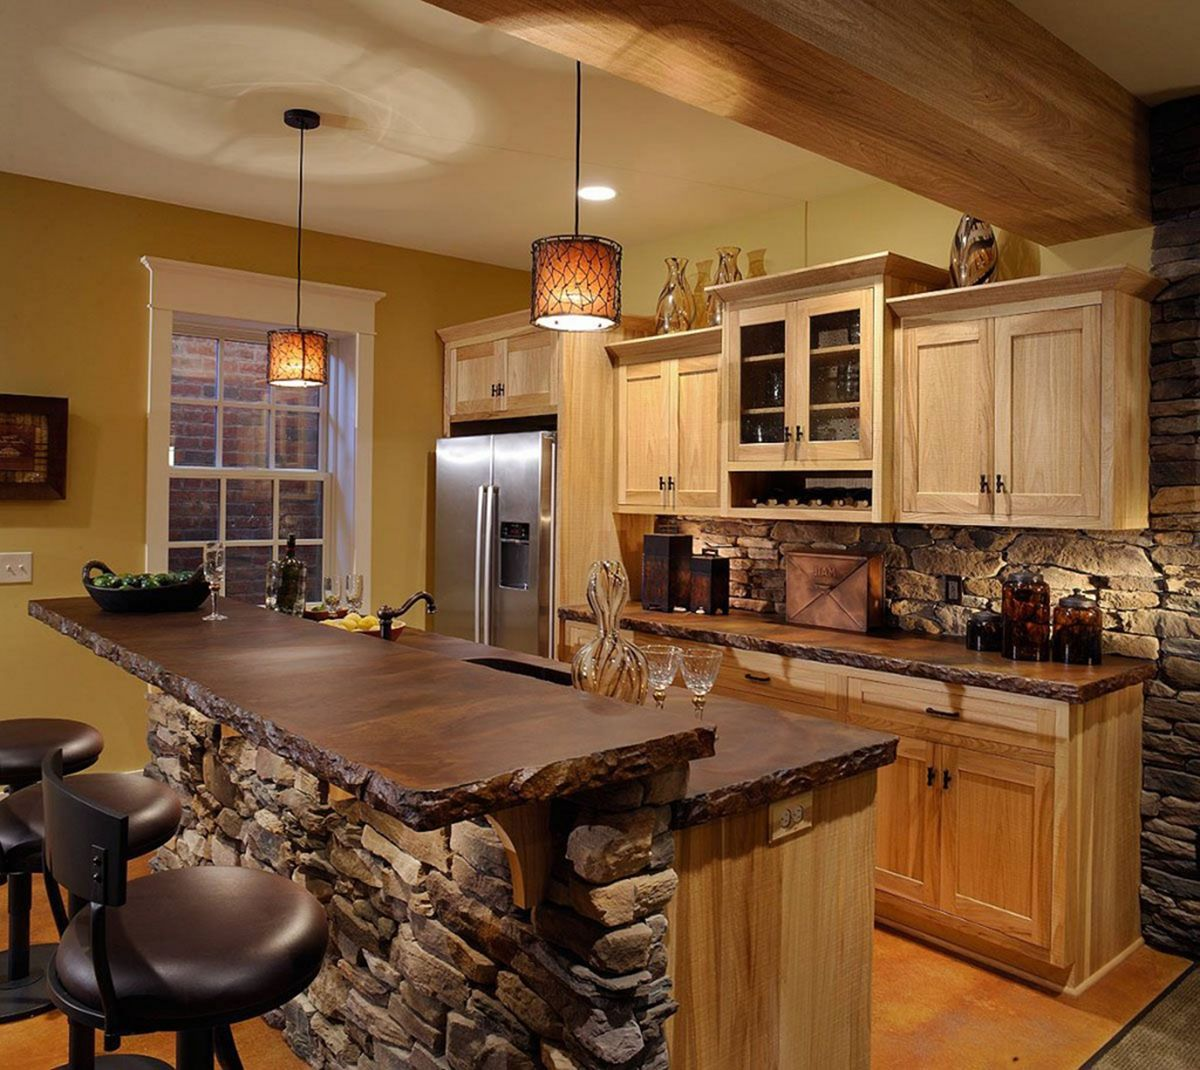 35 gorgeous rustic kitchen designs and decorations for cozy kitchen small rustic kitchens on kitchen decor themes rustic id=56445